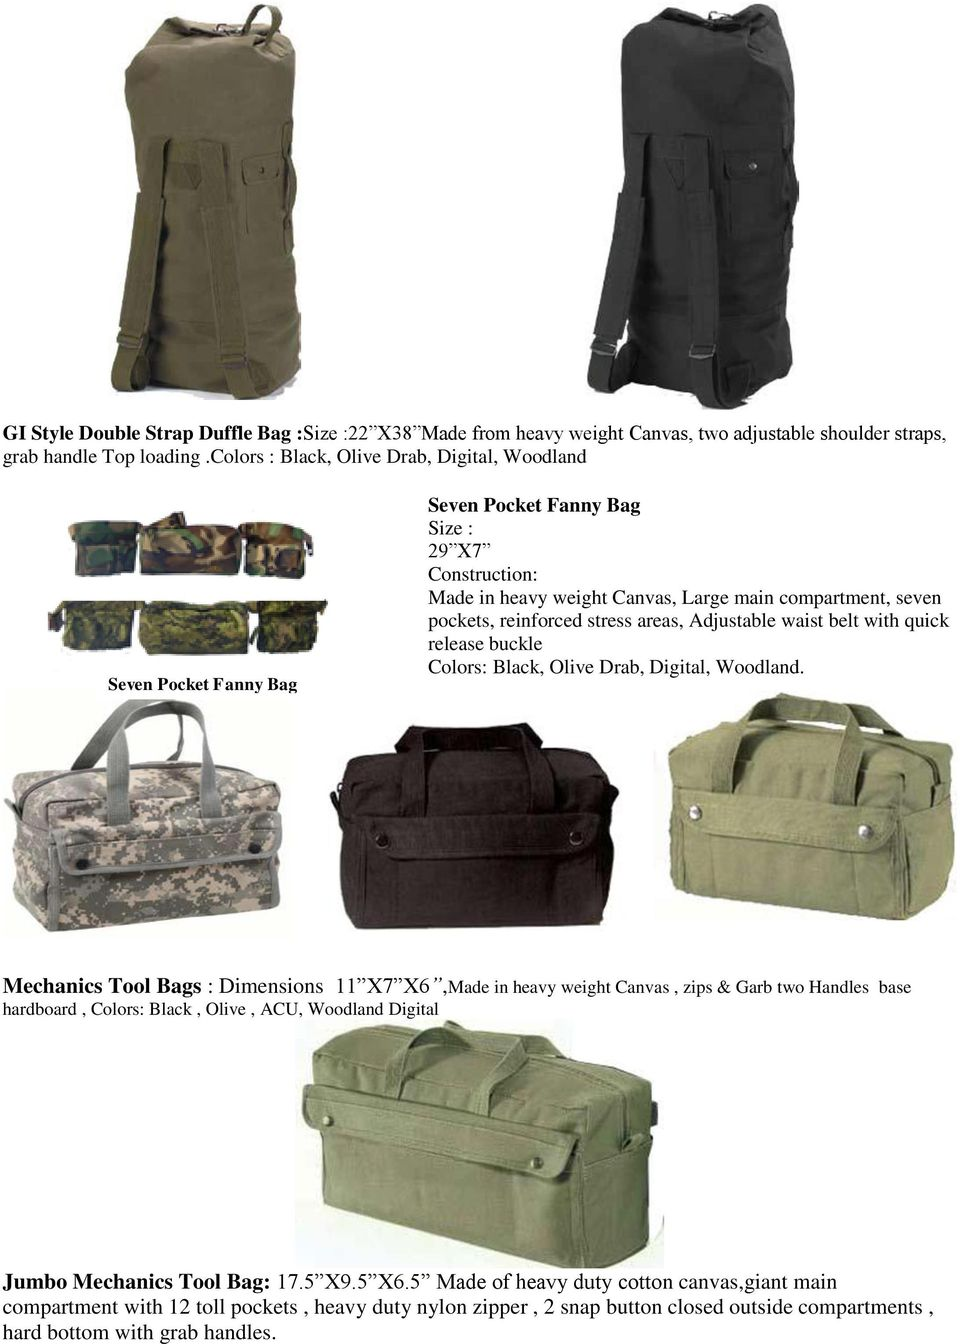 stress areas, Adjustable waist belt with quick release buckle Colors: Black, Olive Drab, Digital, Woodland.